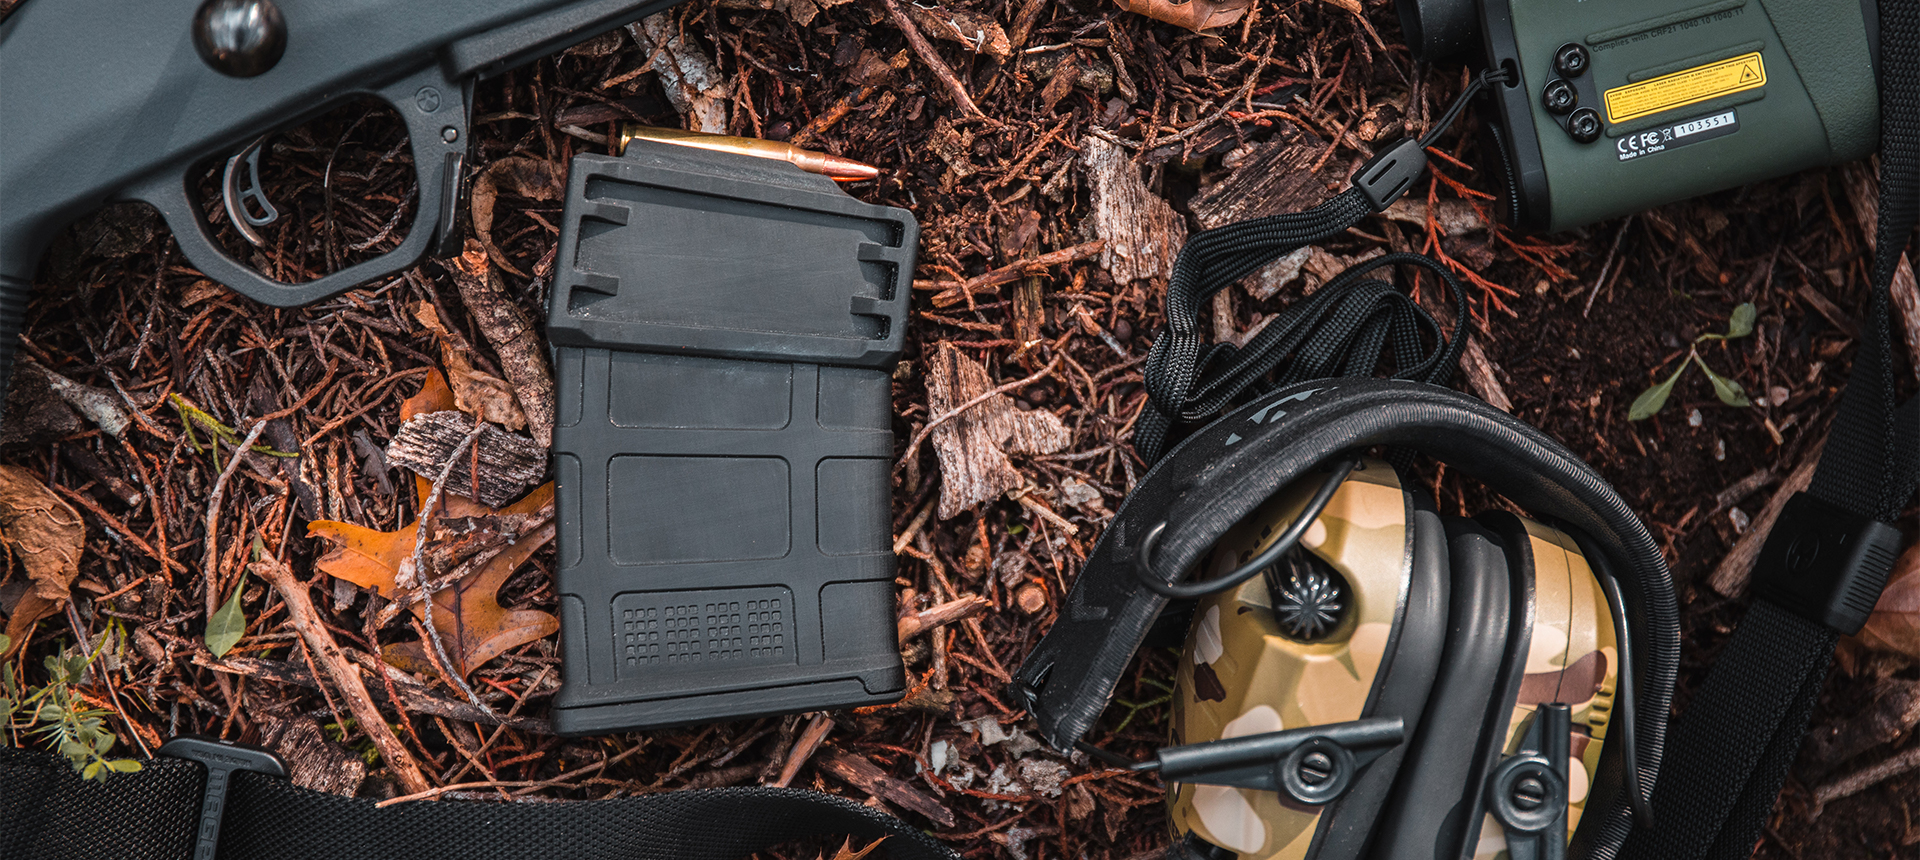 Loaded Magpul PMAG 10 5.56 AC on the ground surrounded by a variety of typical shooting accessories